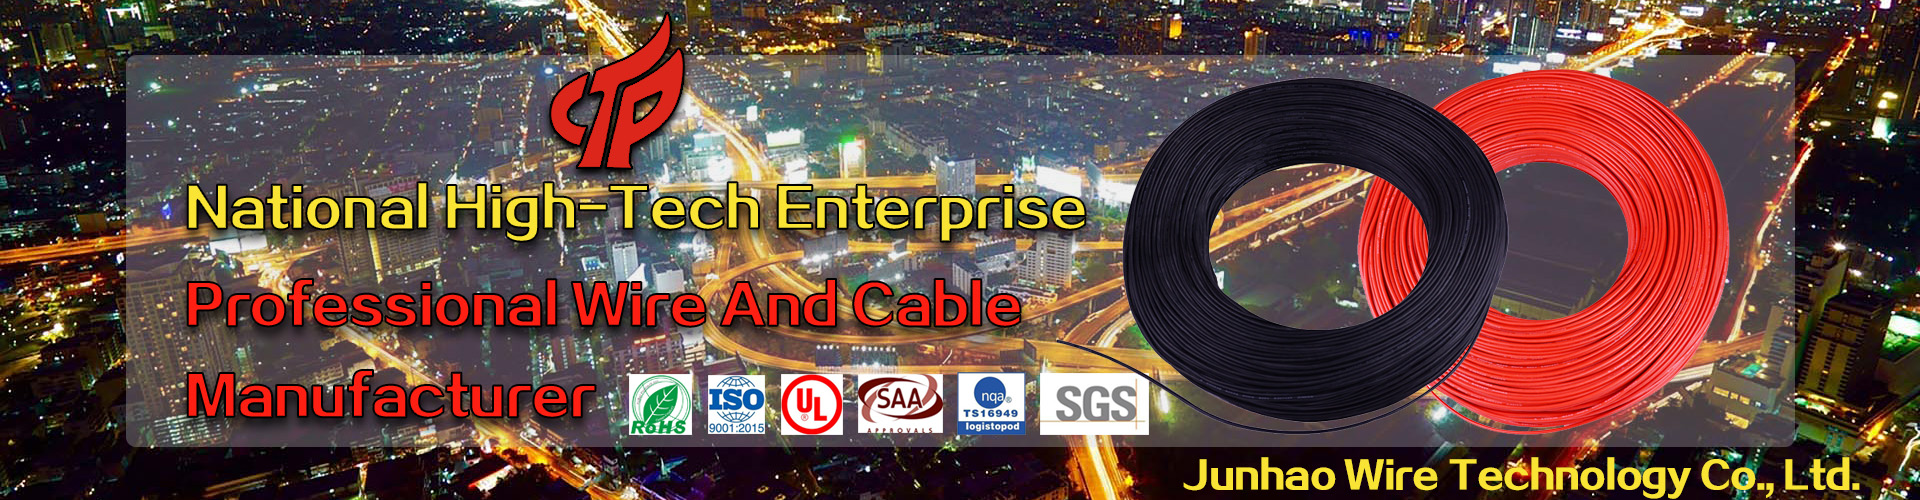 Junhao wire & cable manufacturers